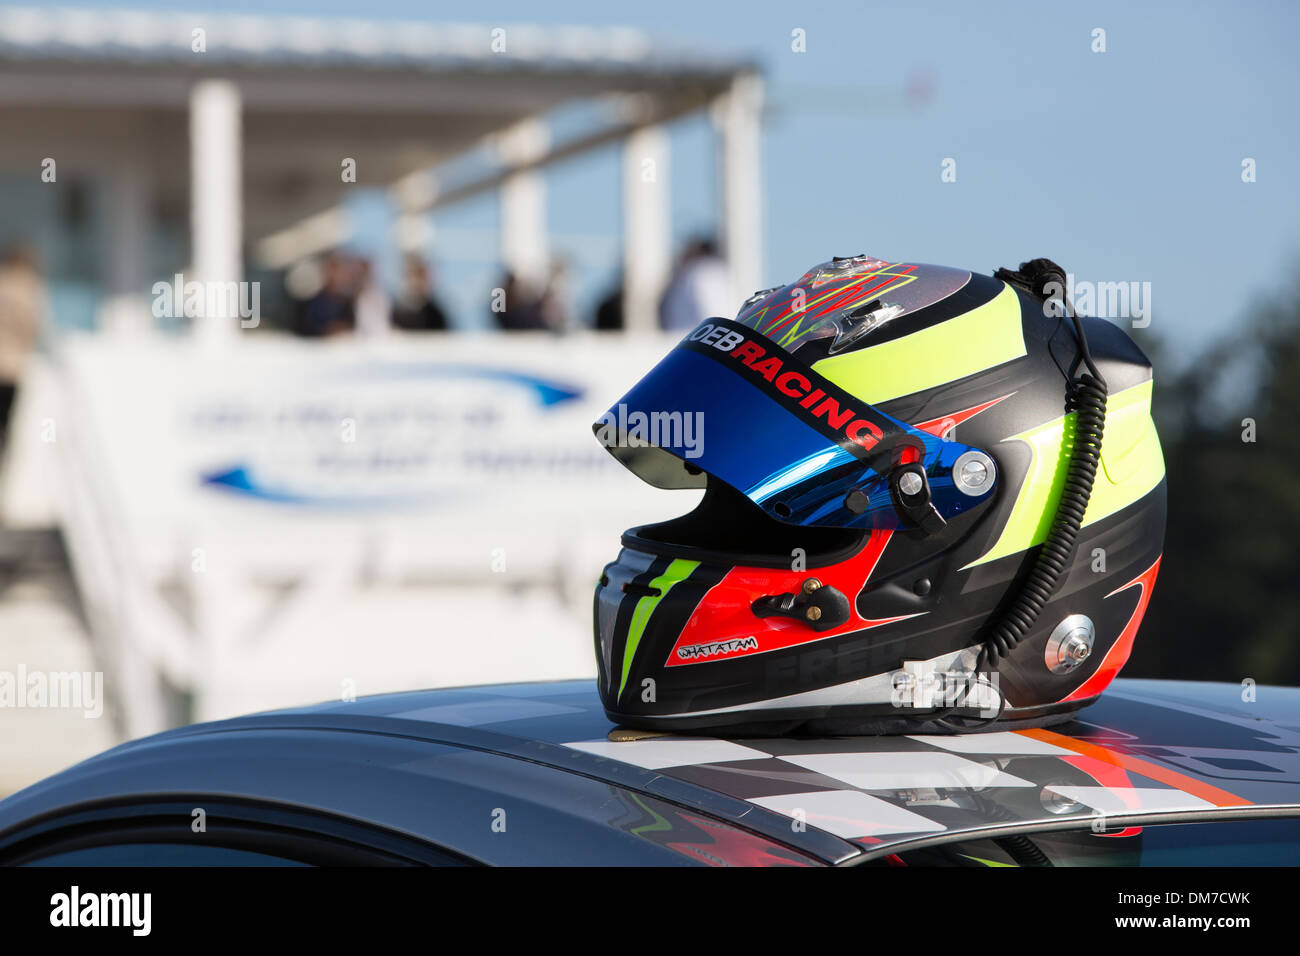 RACING HELMET, PRO'PULSION, DRIVING COURSES ON A RACE TRACK, DREUX, EURE-ET-LOIR (28), FRANCE - Stock Image